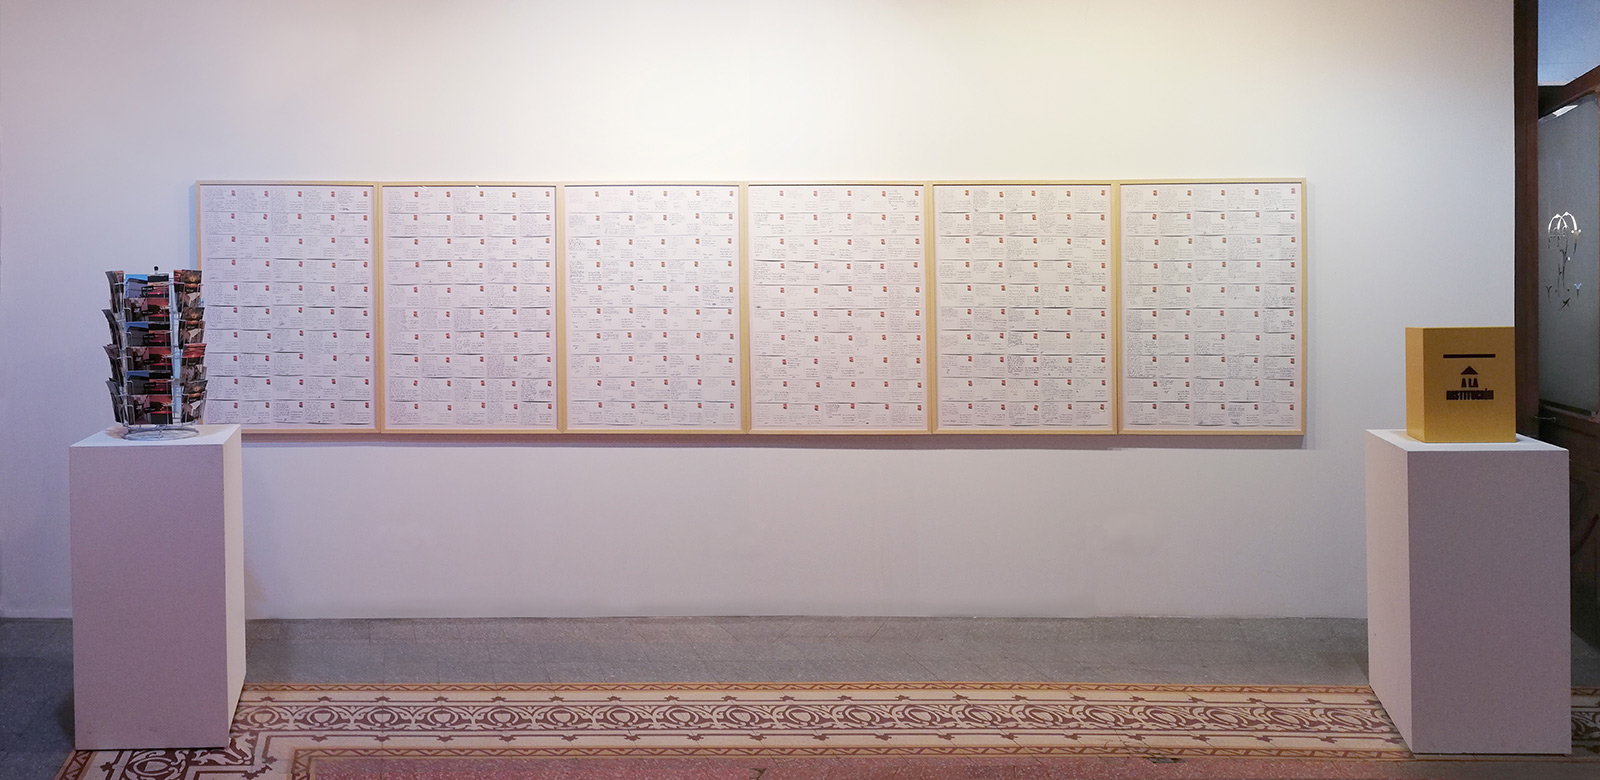 «300 postcards to the mayor», 2018, Installation, Postcard display stand, mailbox and 6 photo prints of 120 x 85 cm with 50 postcards each.